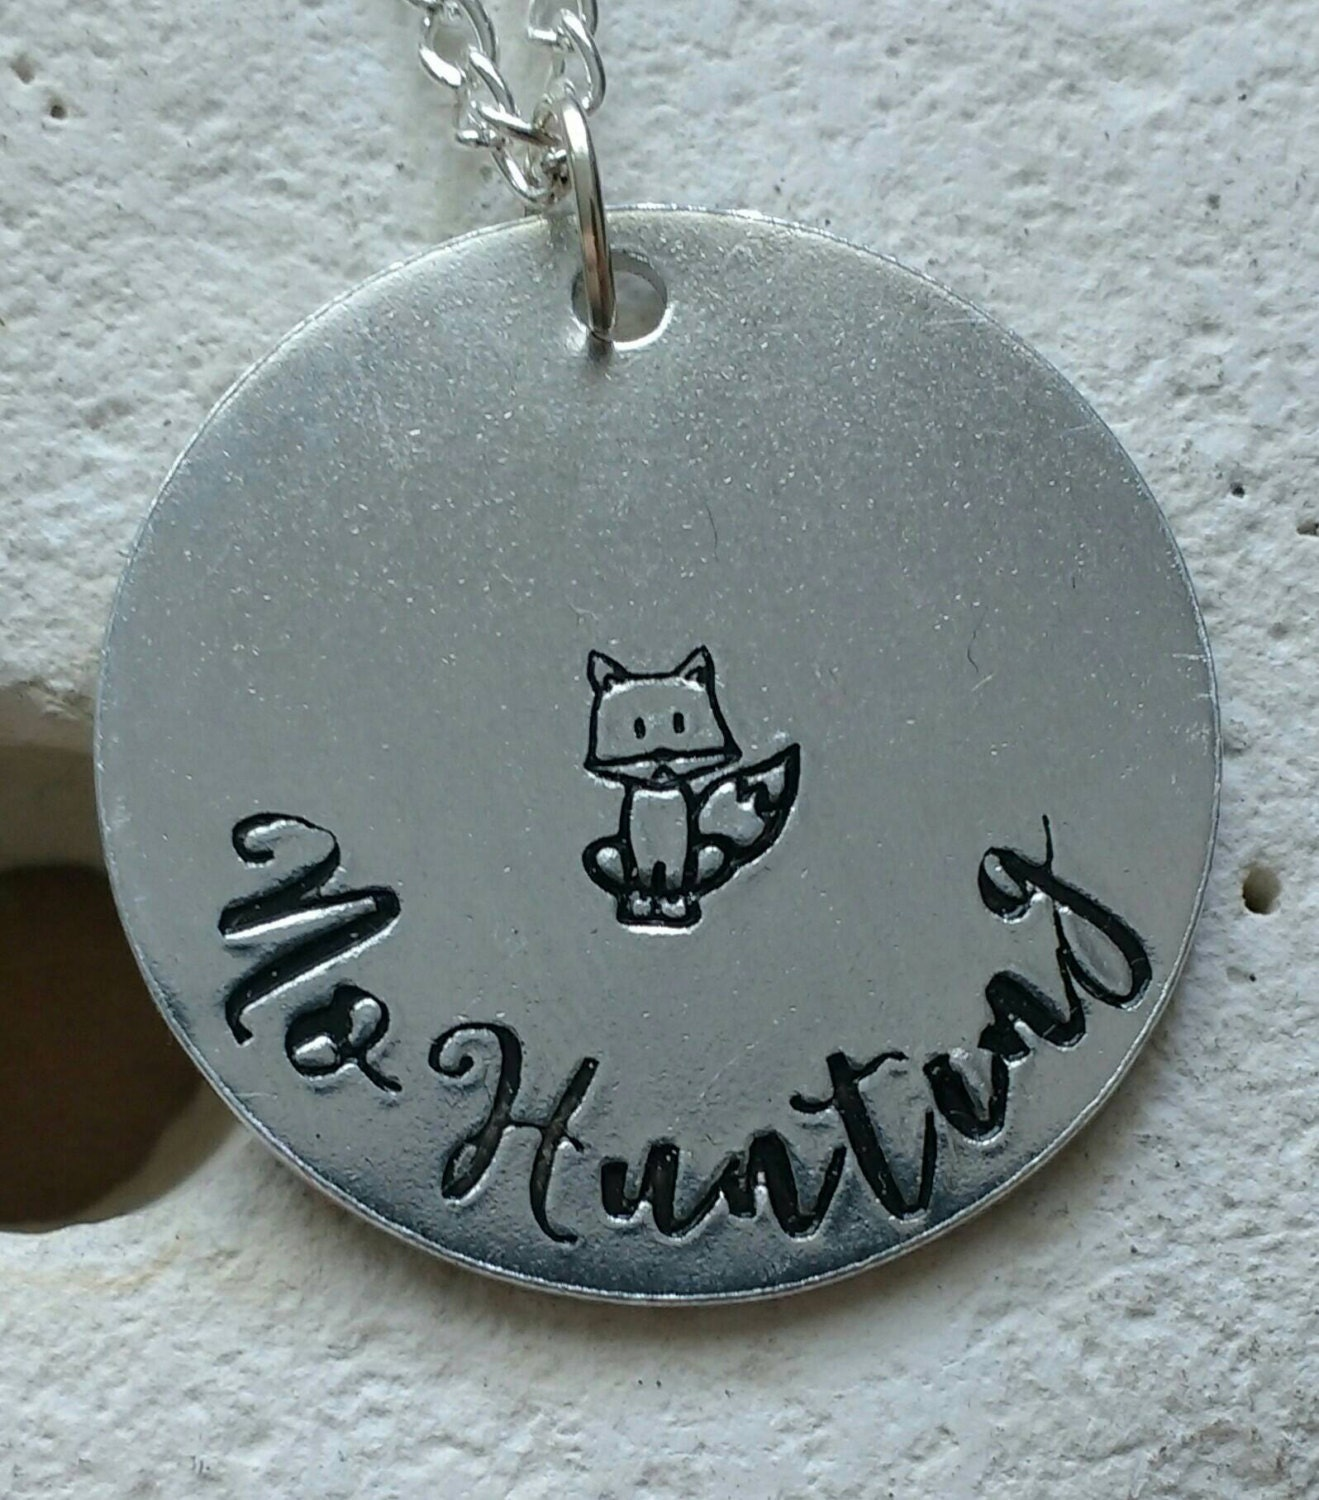 No hunting fox necklace - vegan jewellery - vegan necklace - jewelry - animal rights jewellery - handstamped 28mm pendant on 18